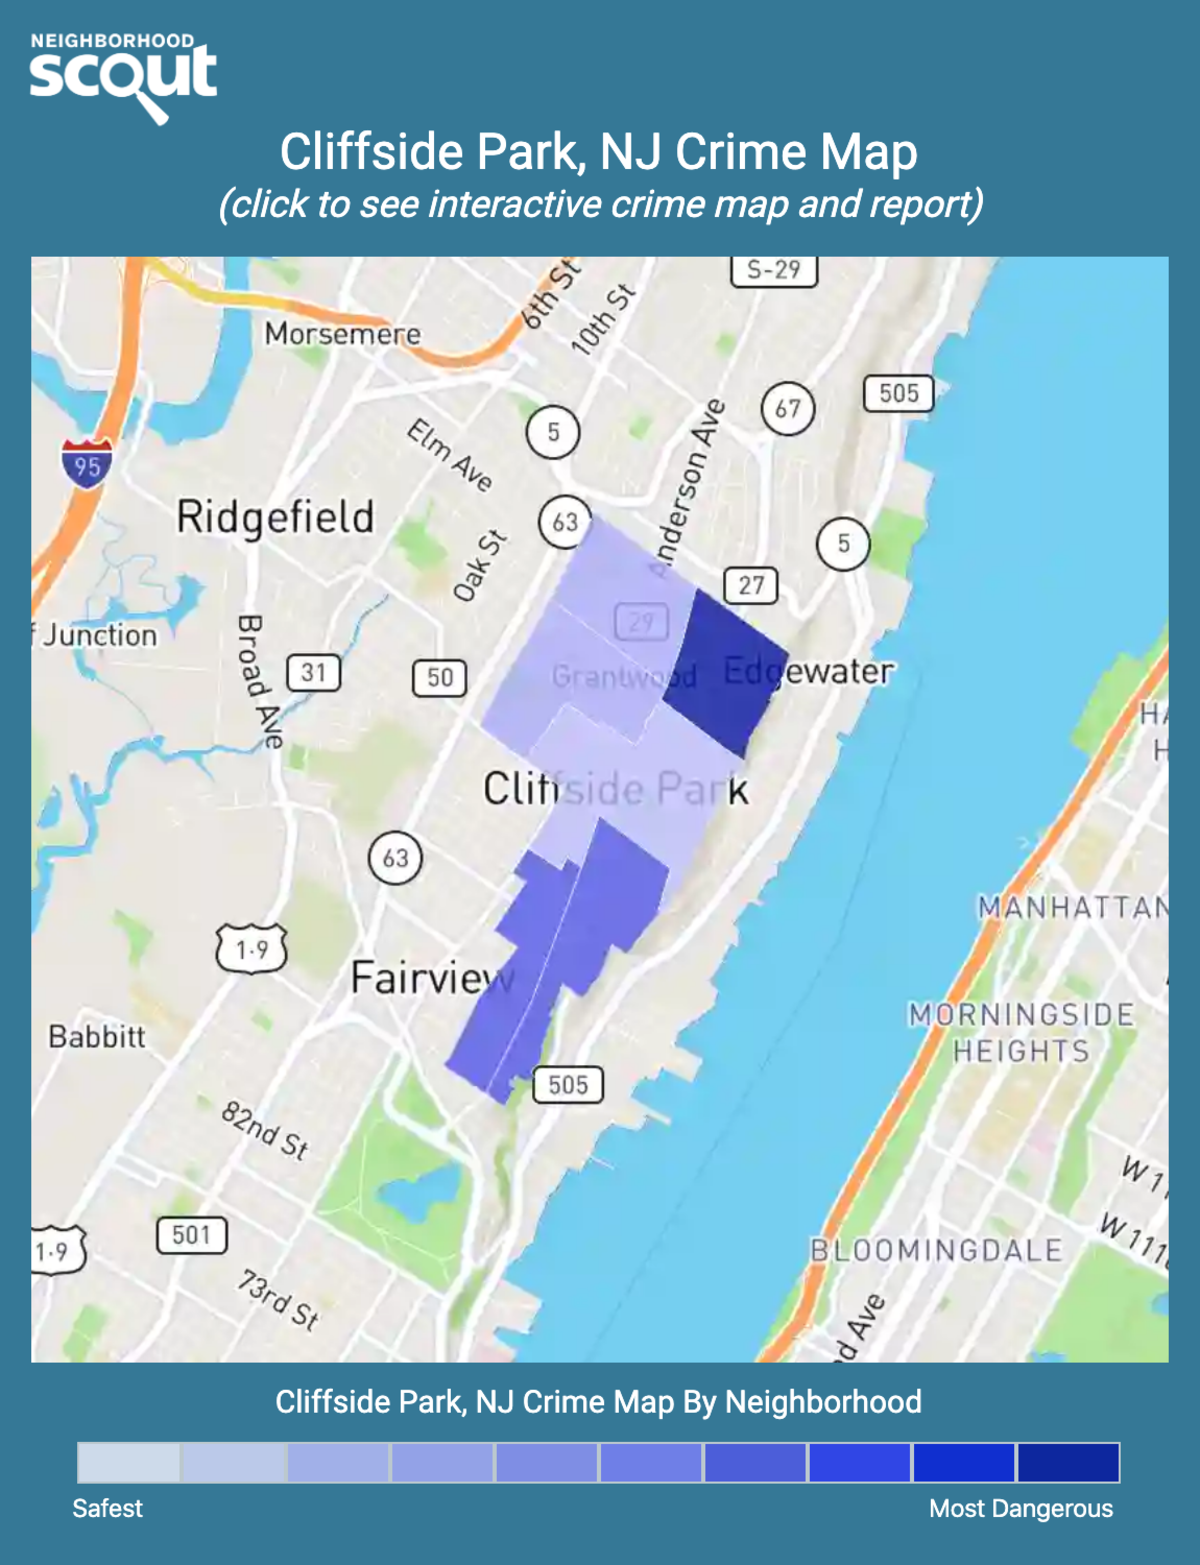 Cliffside Park, New Jersey crime map